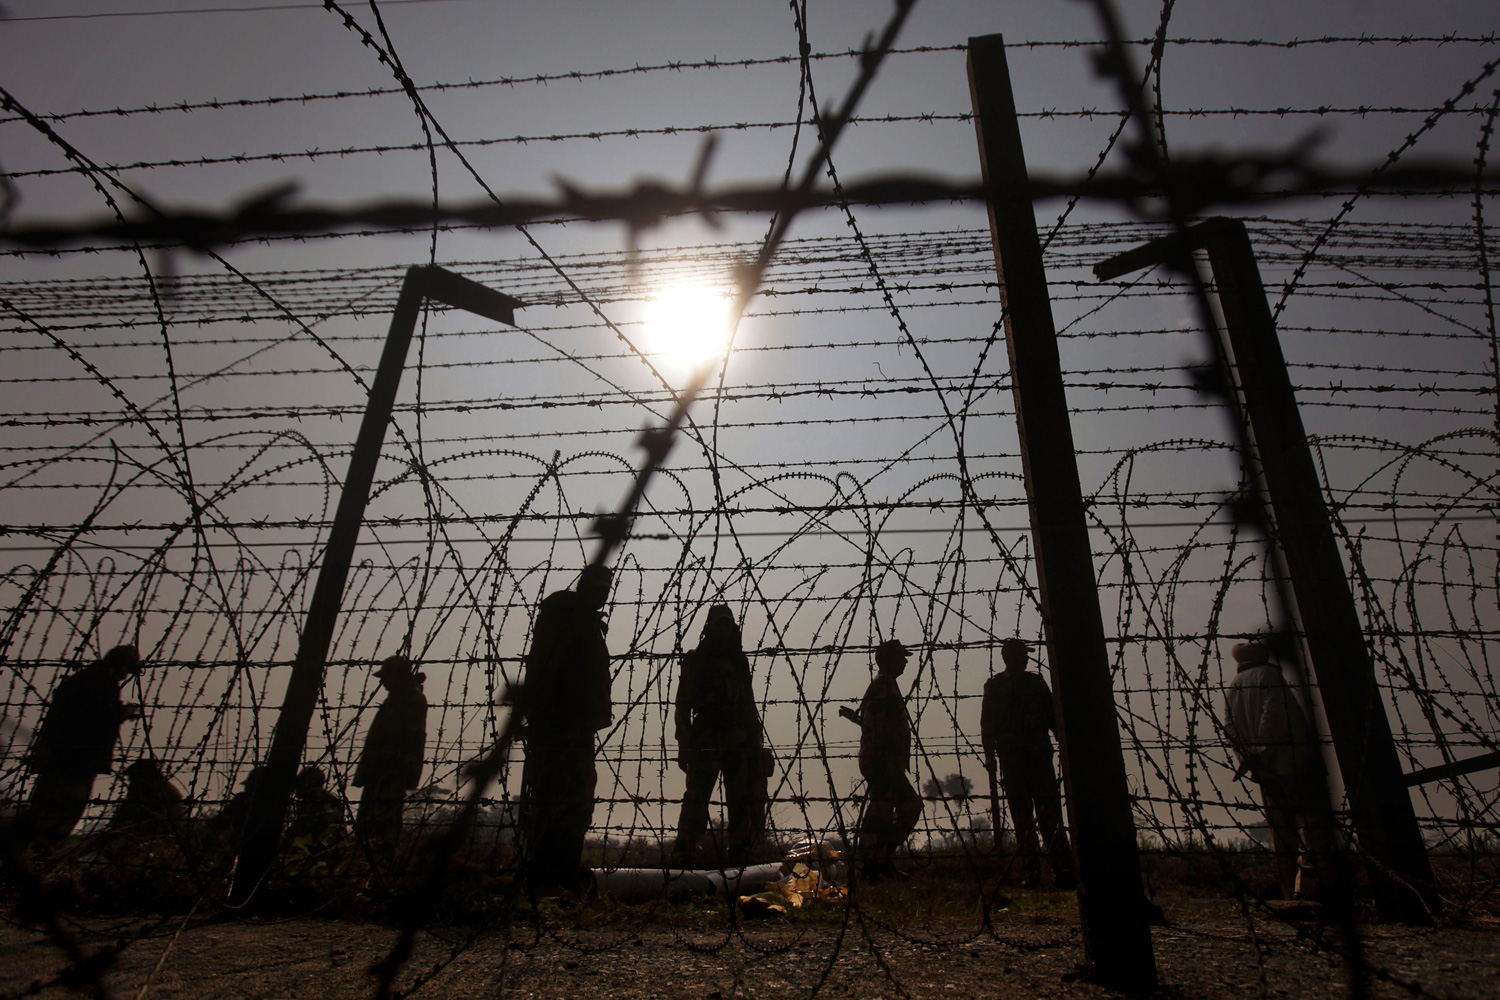 January 18, 2012. Indian Border Security Force soldiers are silhouetted as they stand guard at the site of an alleged shoot-out on the India-Pakistan border.